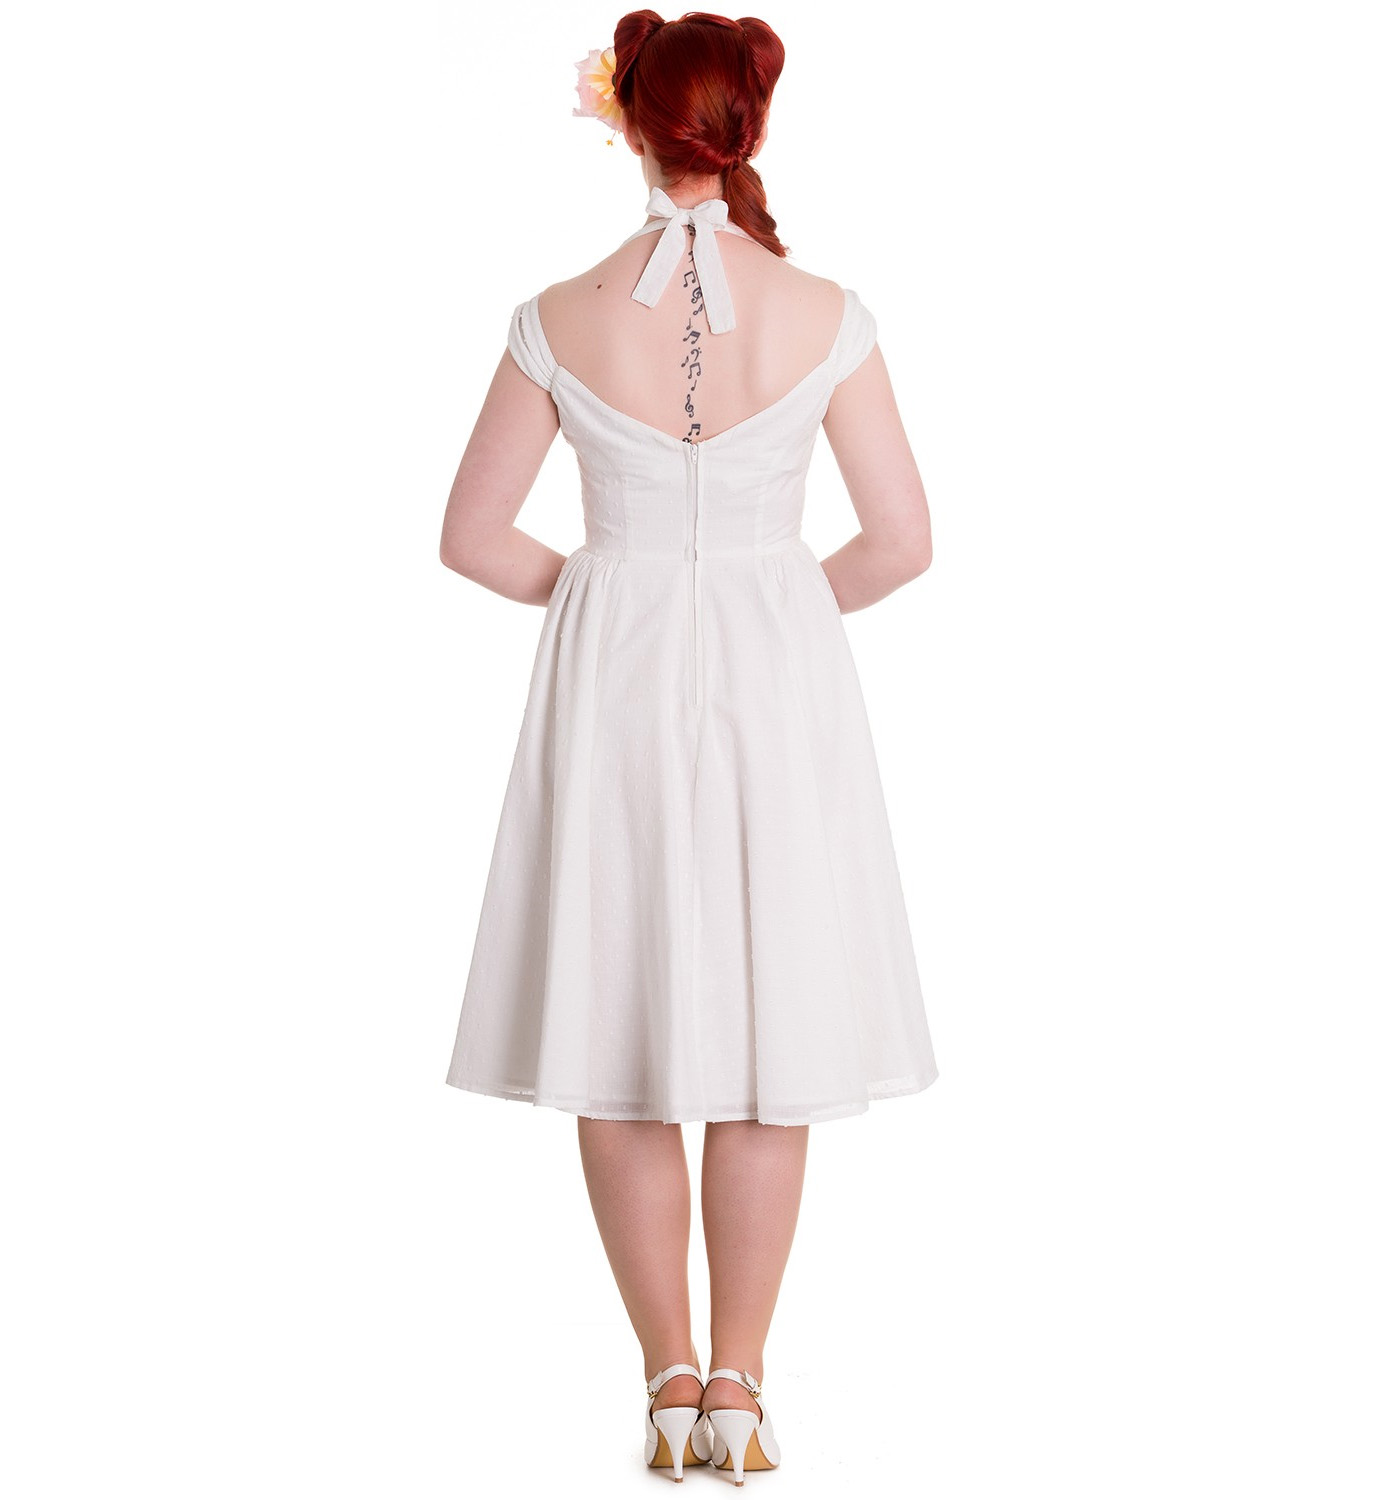 Hell-Bunny-Pin-Up-Party-50s-Dress-Vintage-Rockabilly-EVELINE-White-All-Sizes thumbnail 17